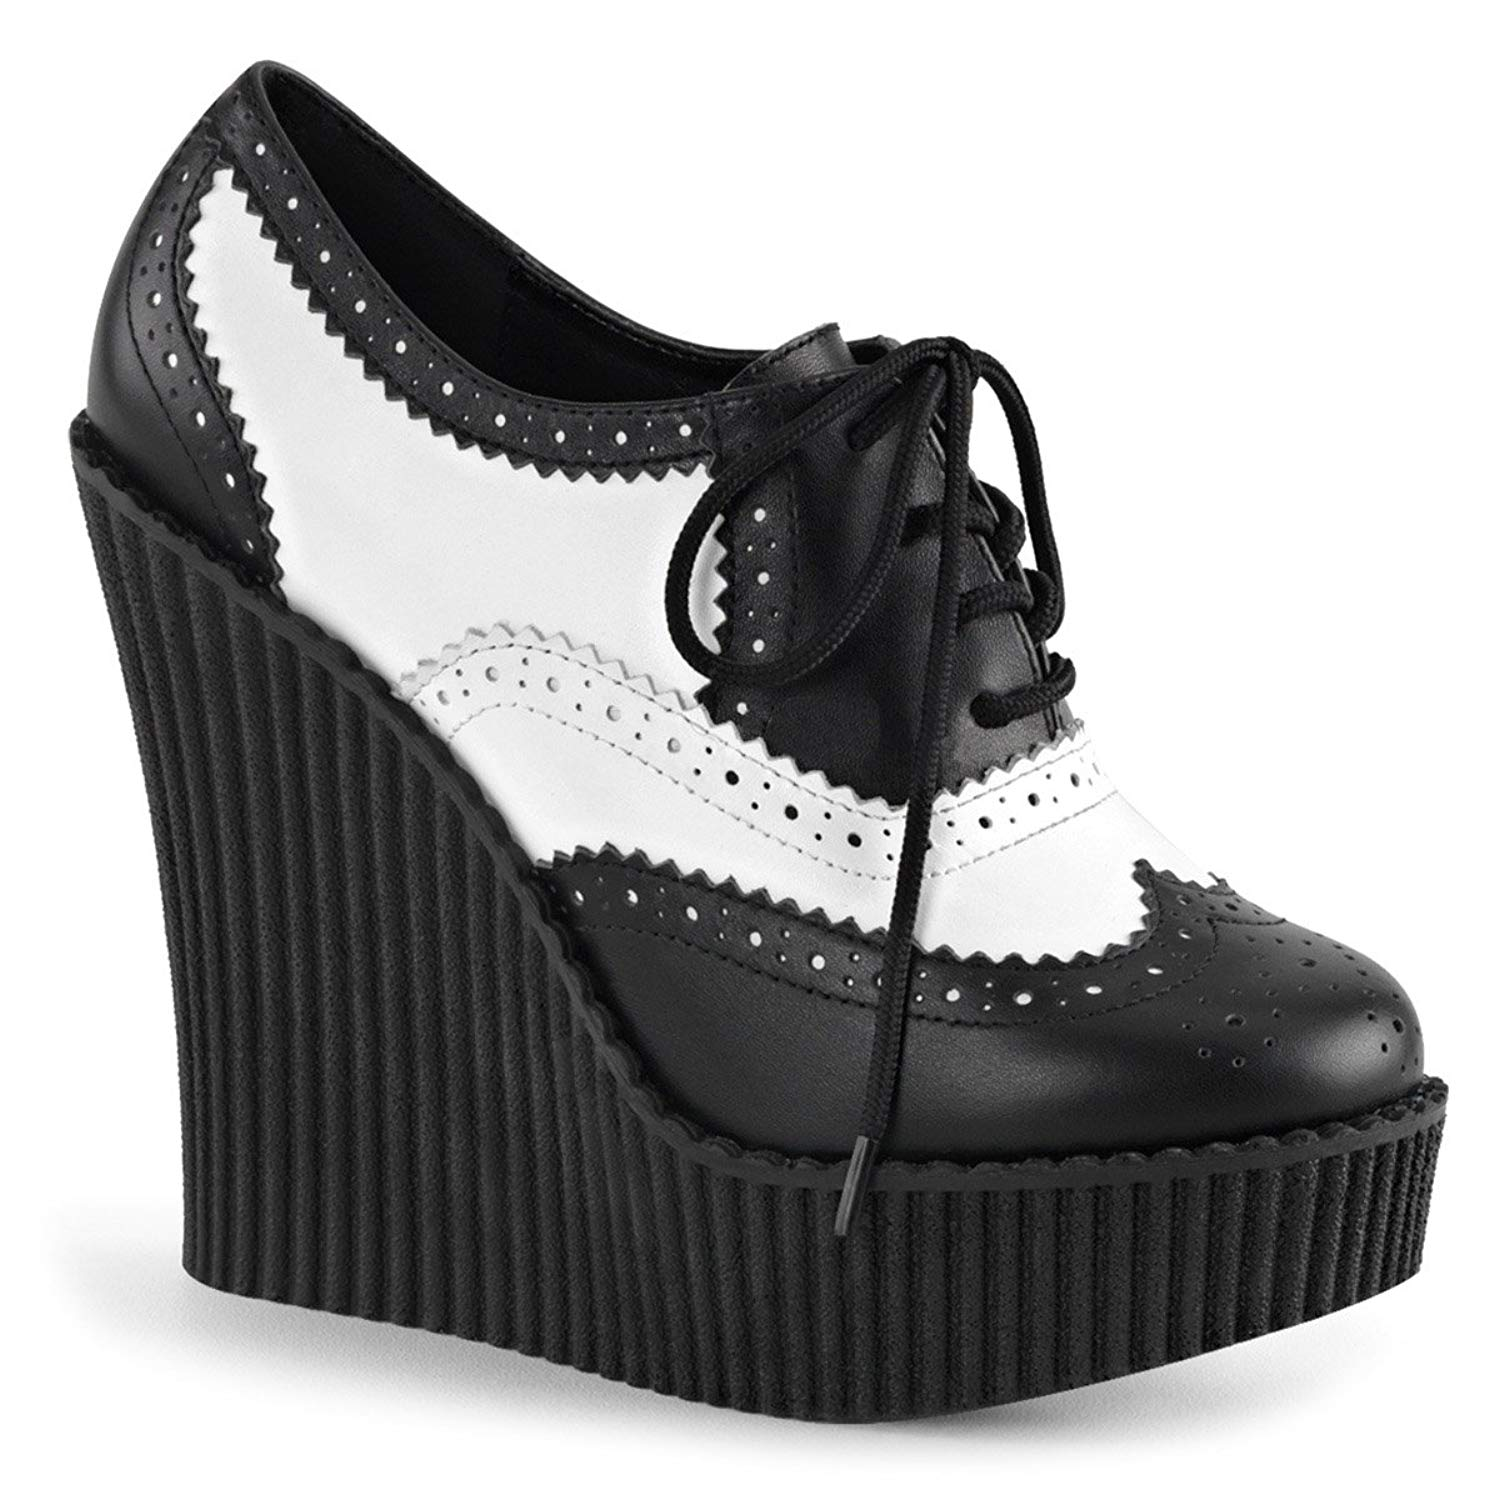 Summitfashions Womens High Heel Wedges Lace up Shoes Platform Creepers Black White Booties